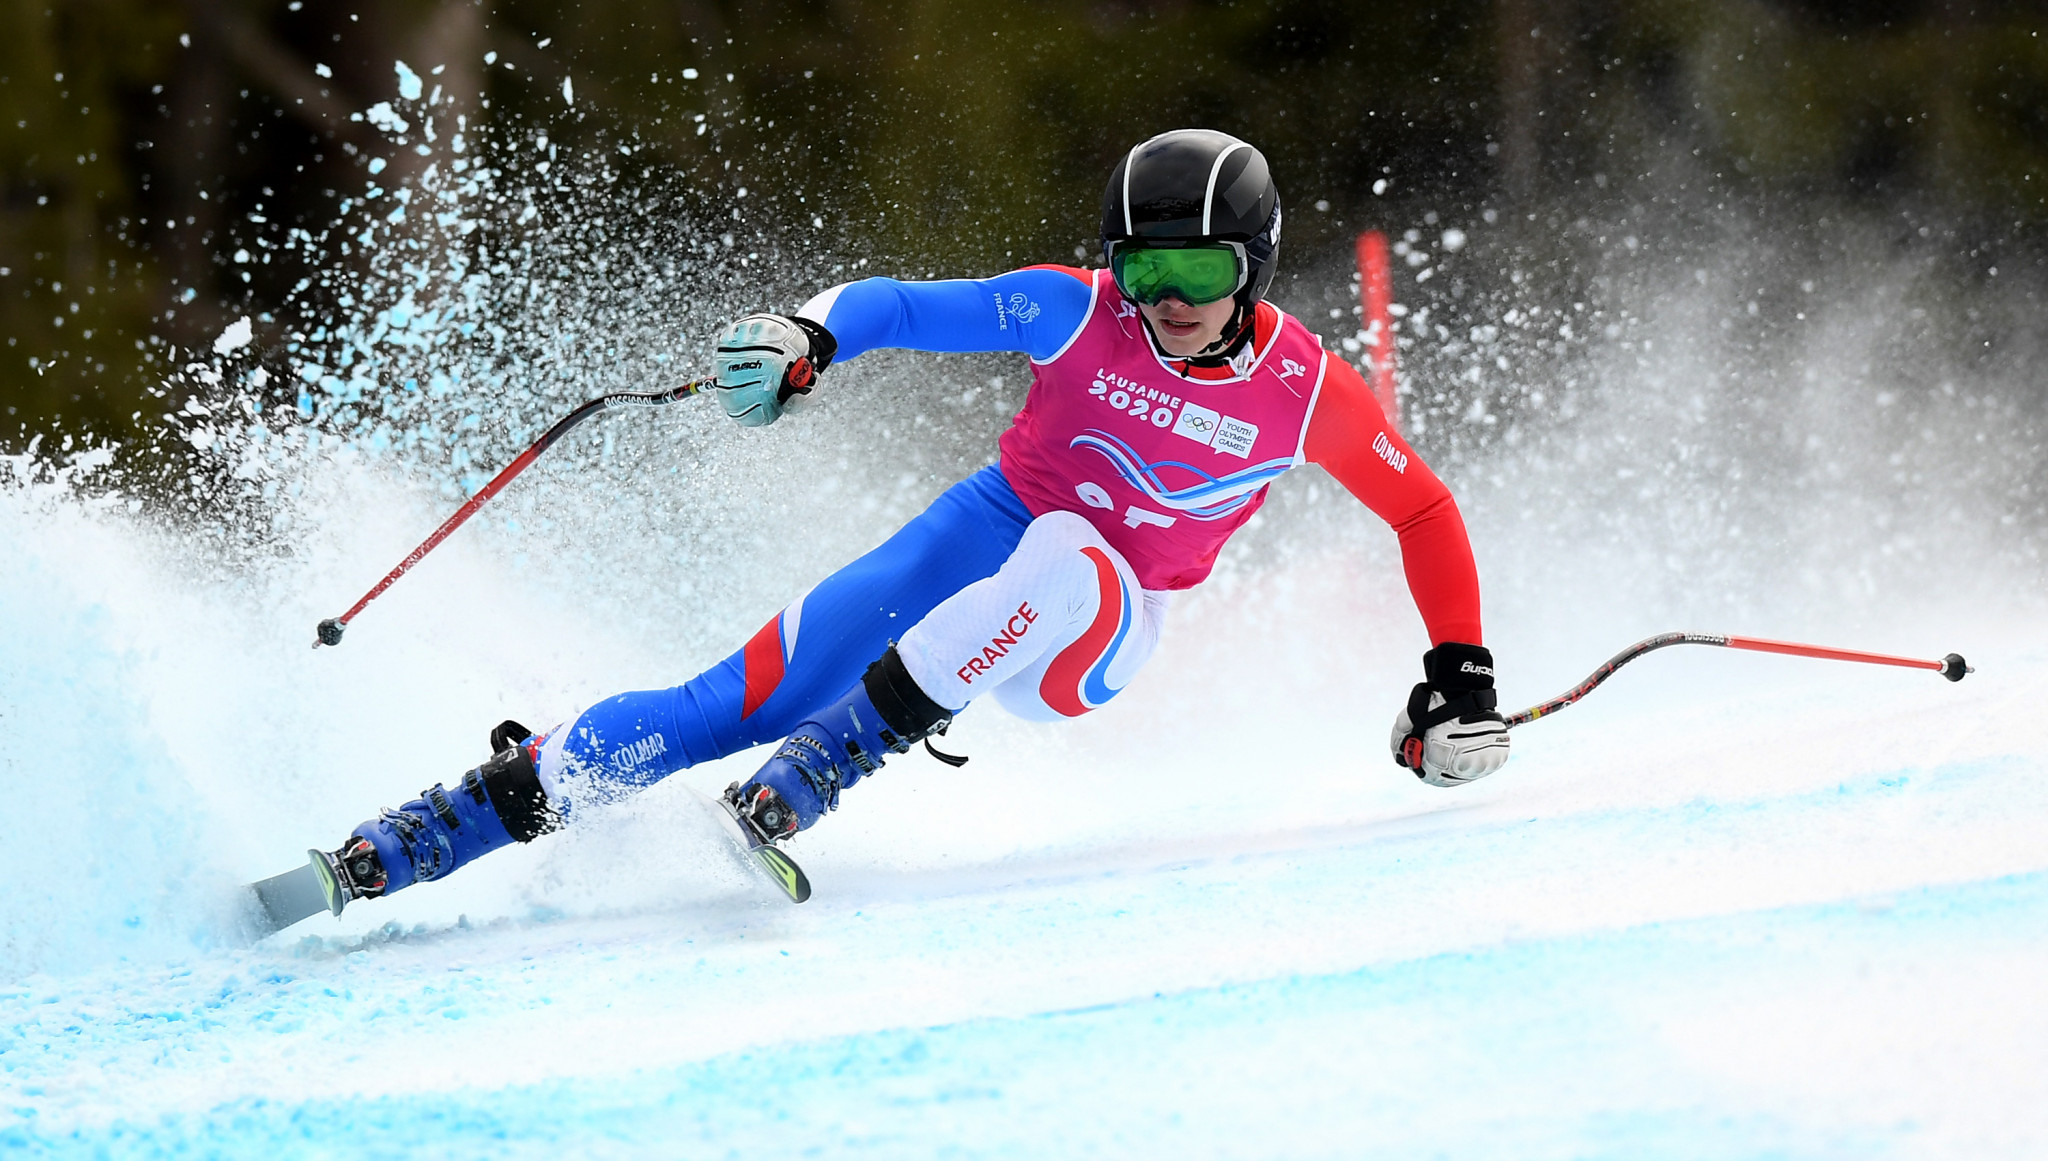 Shared gold and family traditions continued in Lausanne 2020 Alpine combined